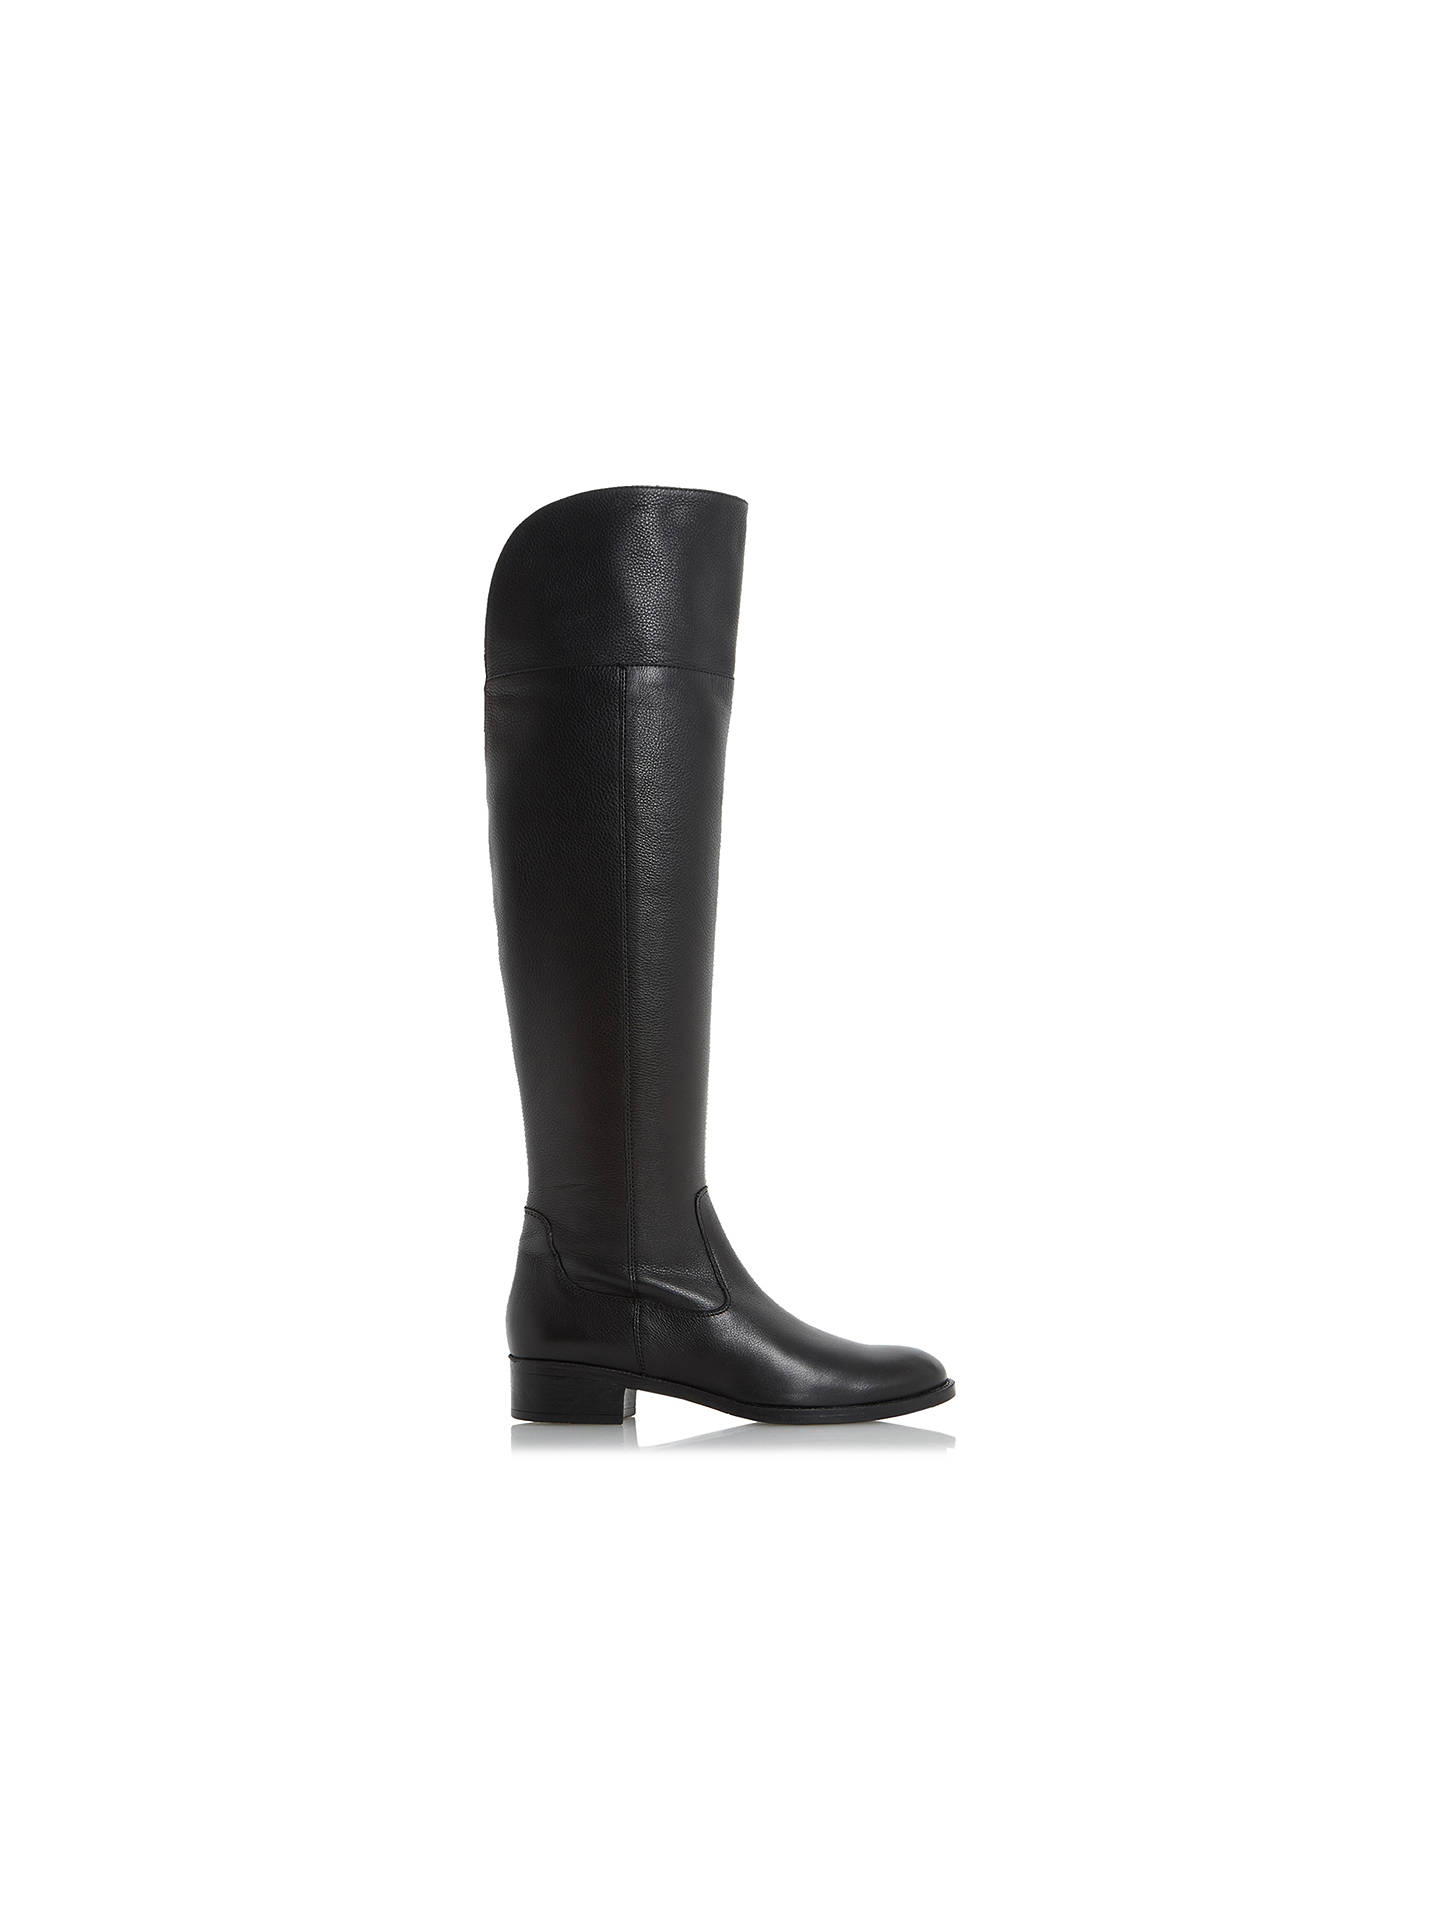 570b1ff2fca ... Buy Dune Taylor Over the Knee Boots